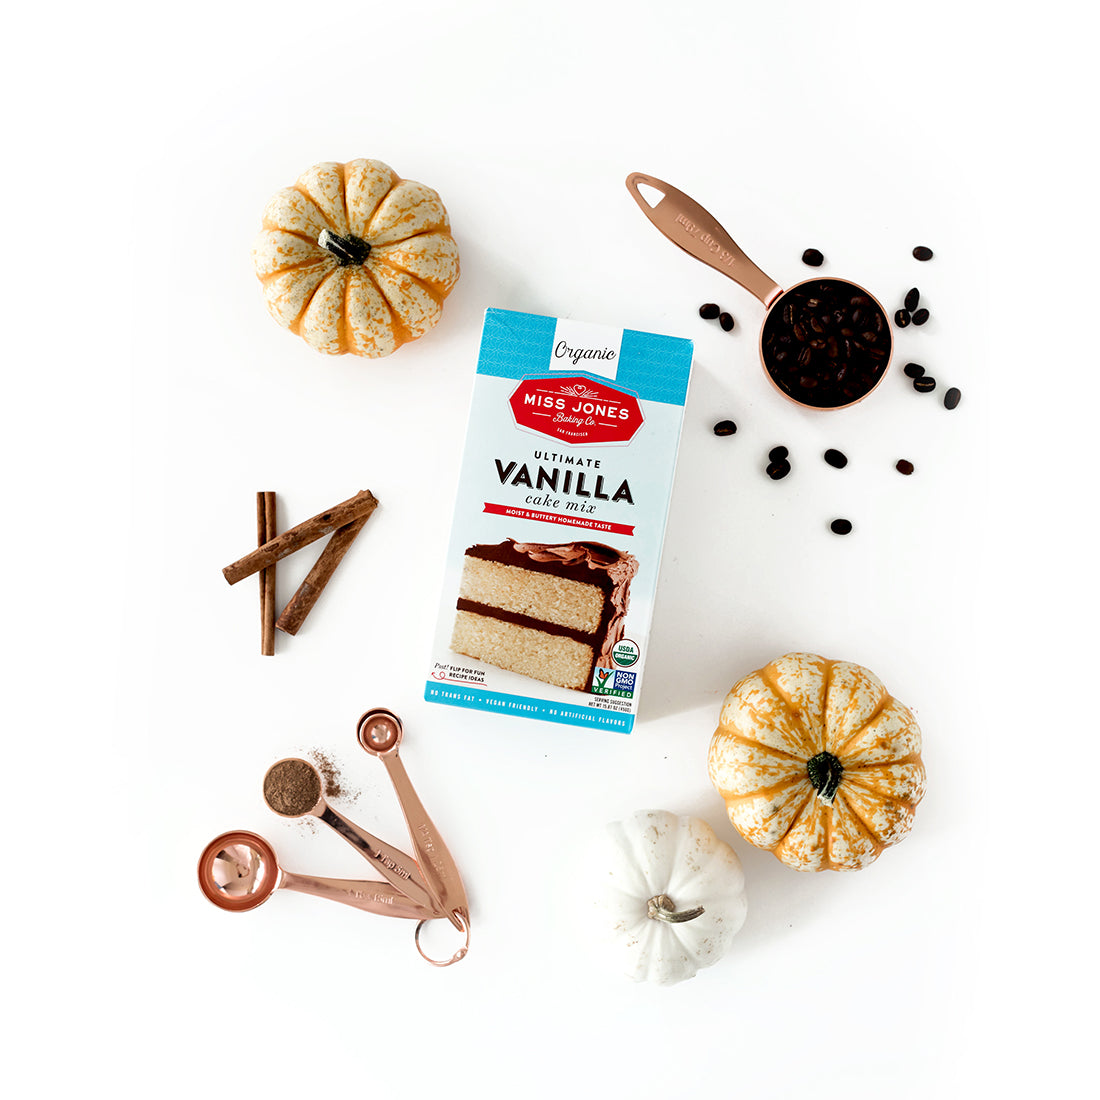 Image from above of a box of Miss Jones Vanilla Cake Mix surrounded by three mini pumpkins, measuring spoons with spices, three sticks of cinnamon and a measuring cup of coffee beans for Miss Jones Baking Co Pumpkin Spice Latte (PSL) Cupcakes recipe